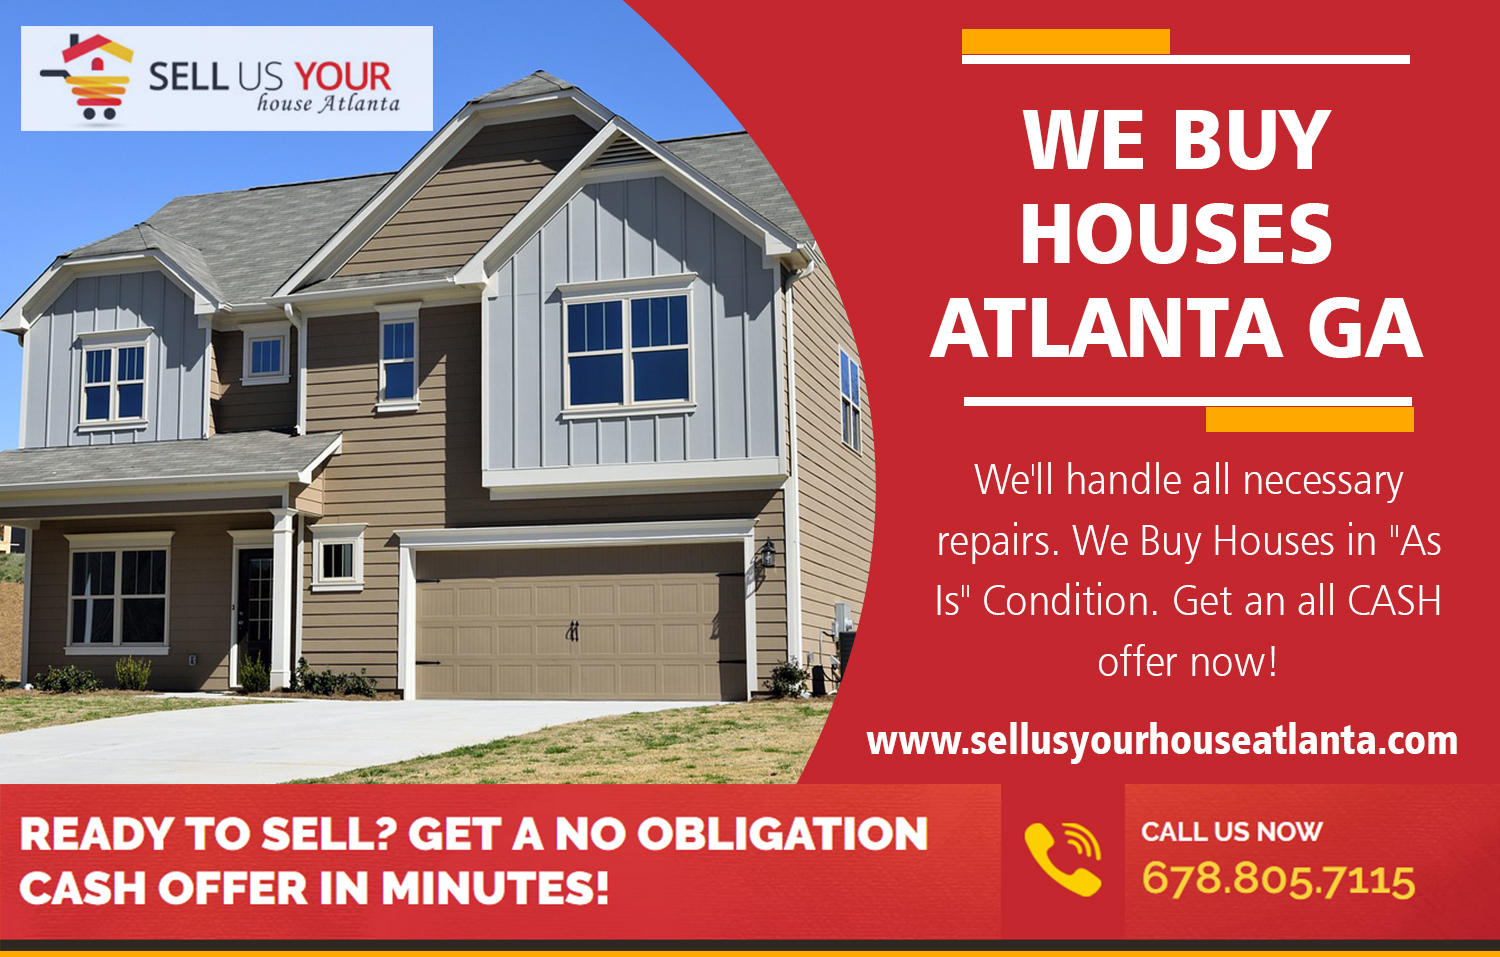 We Buy Houses Atlanta GA